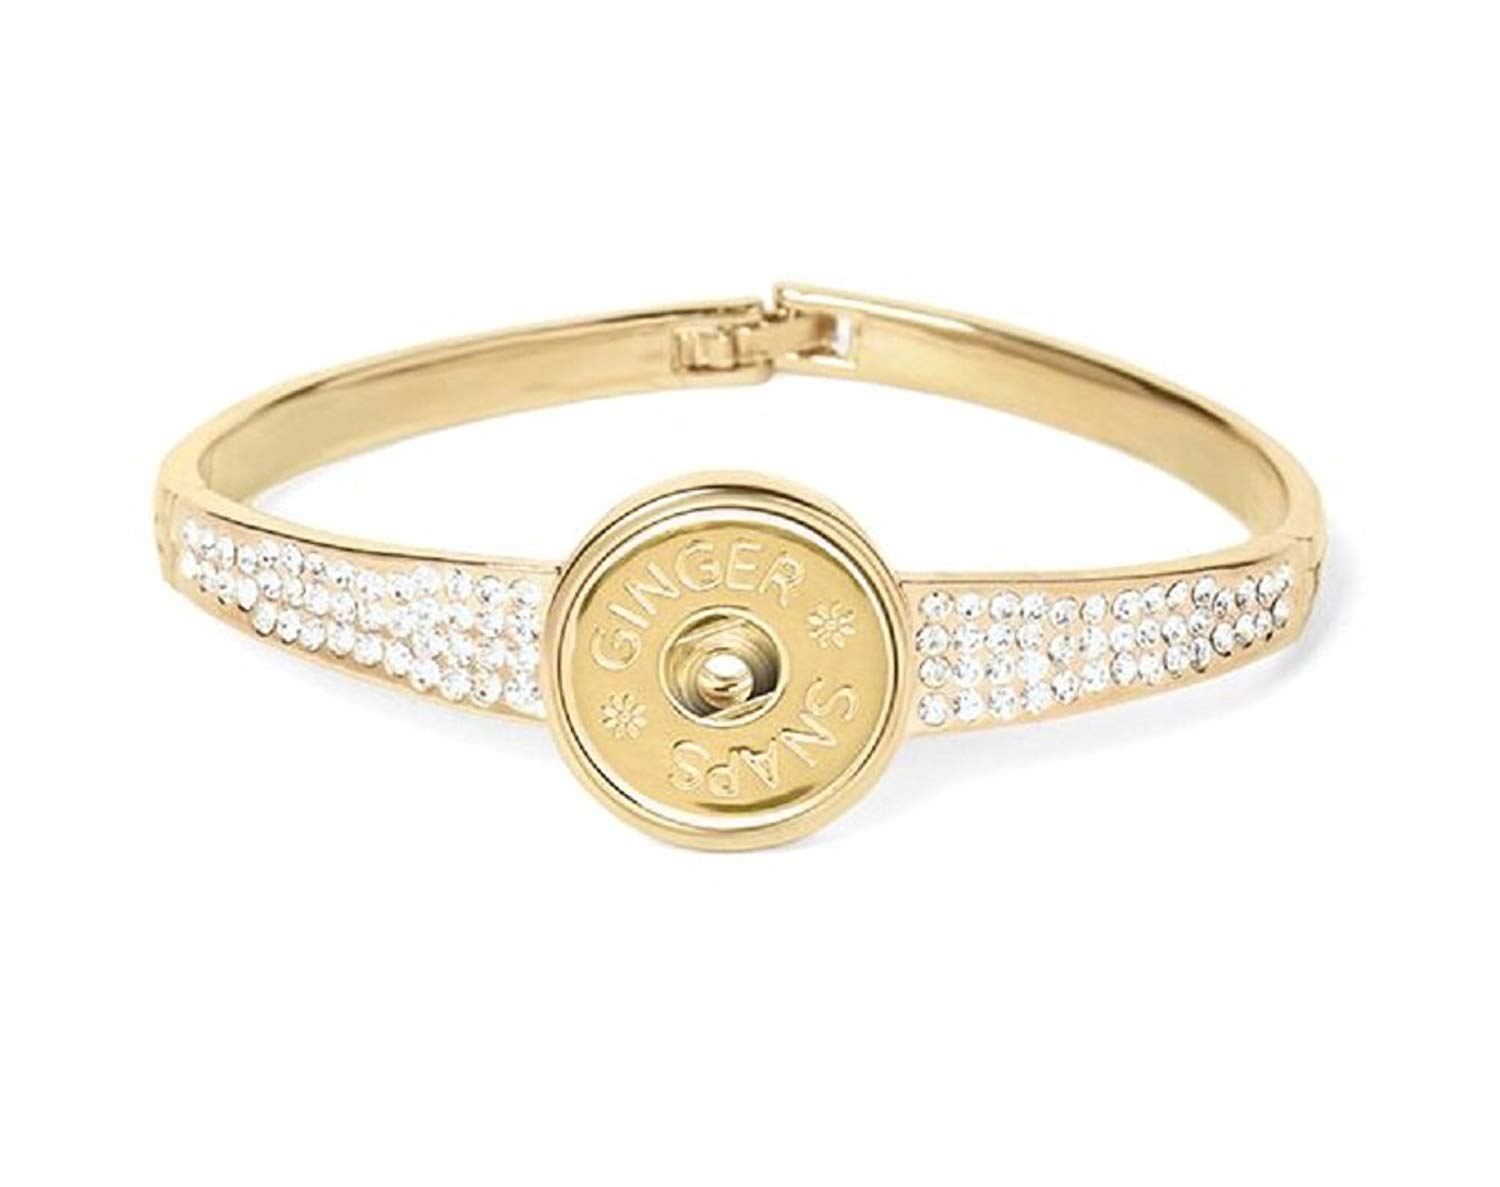 Ginger Snaps (Simulated) Gold Stones Galore Bracelet (Standard Size) SN95-78 Interchangeable Jewelry